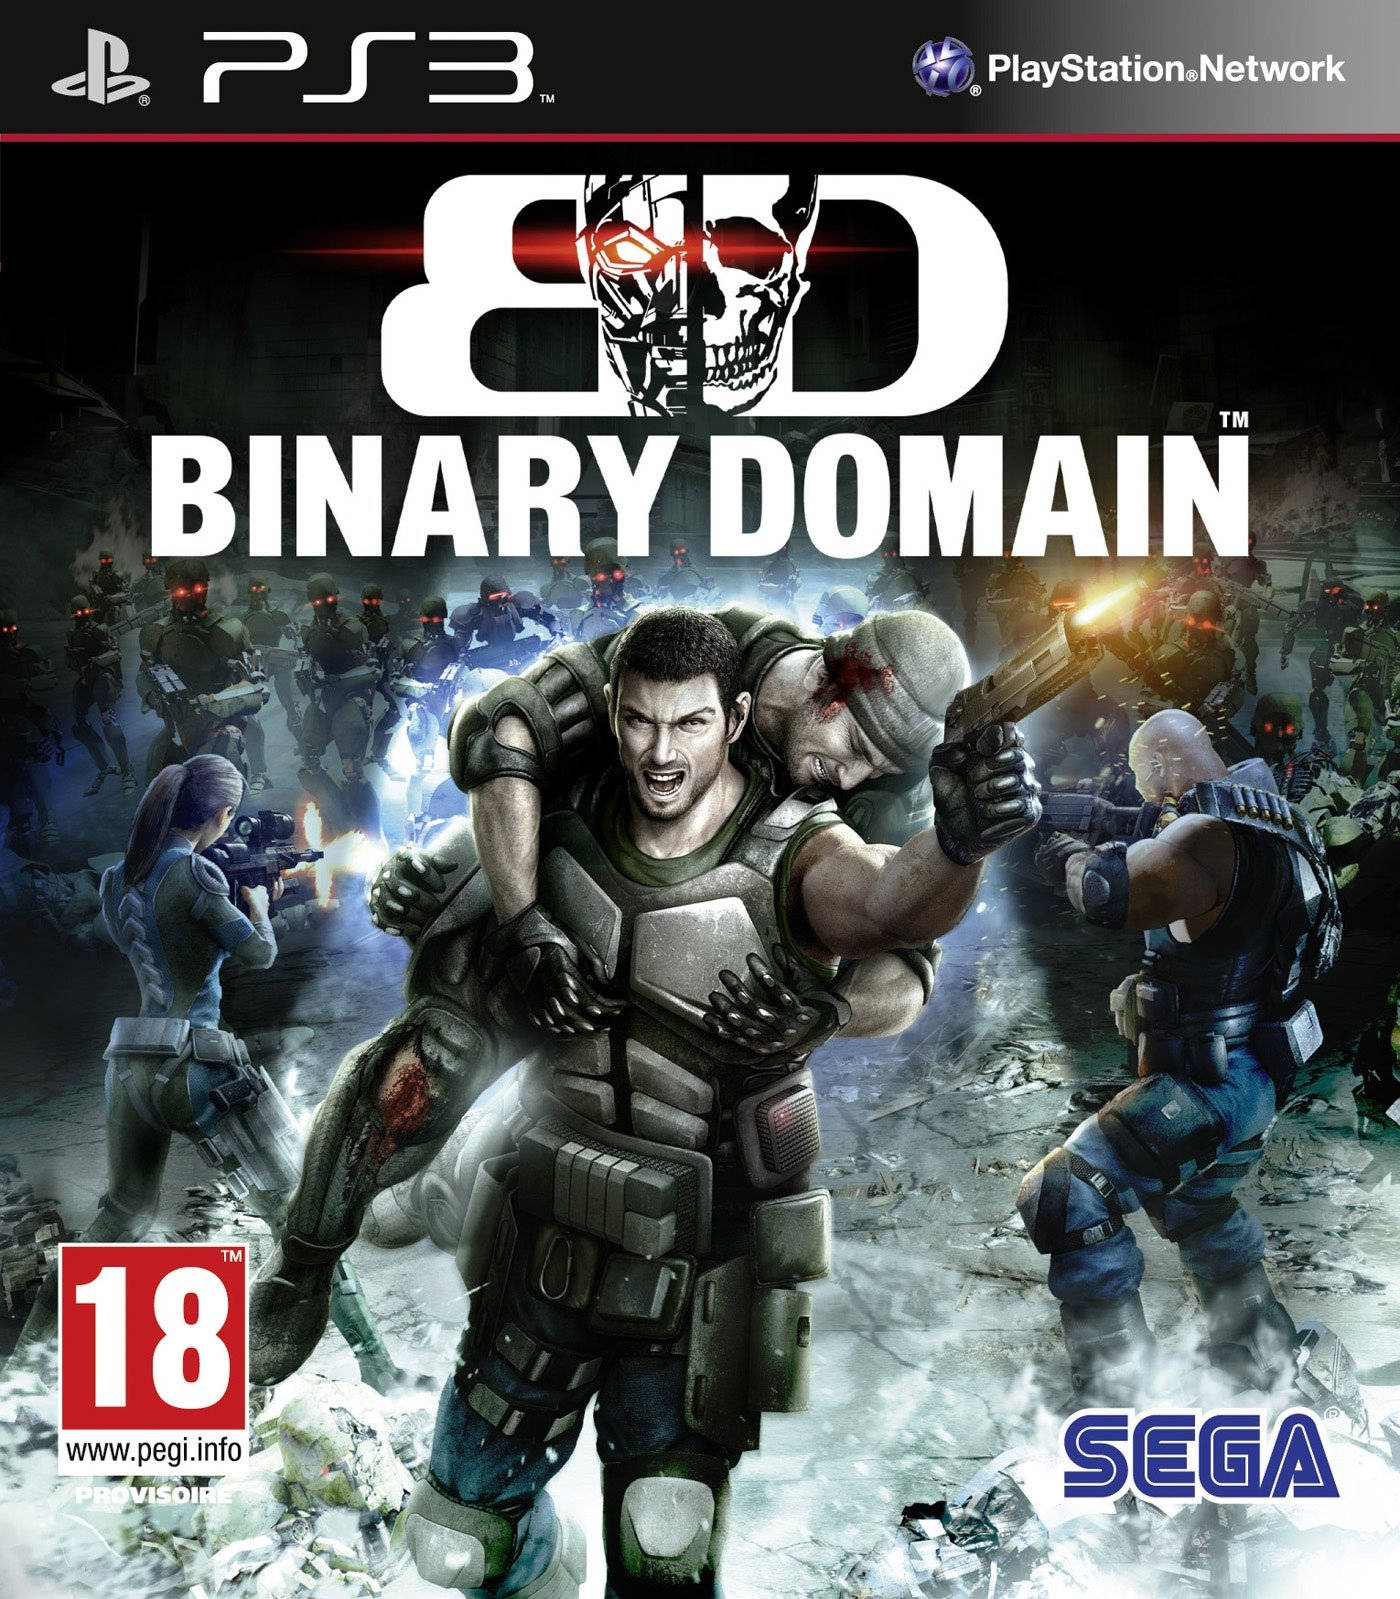 BinaryDomain PS3 Jaquette 001